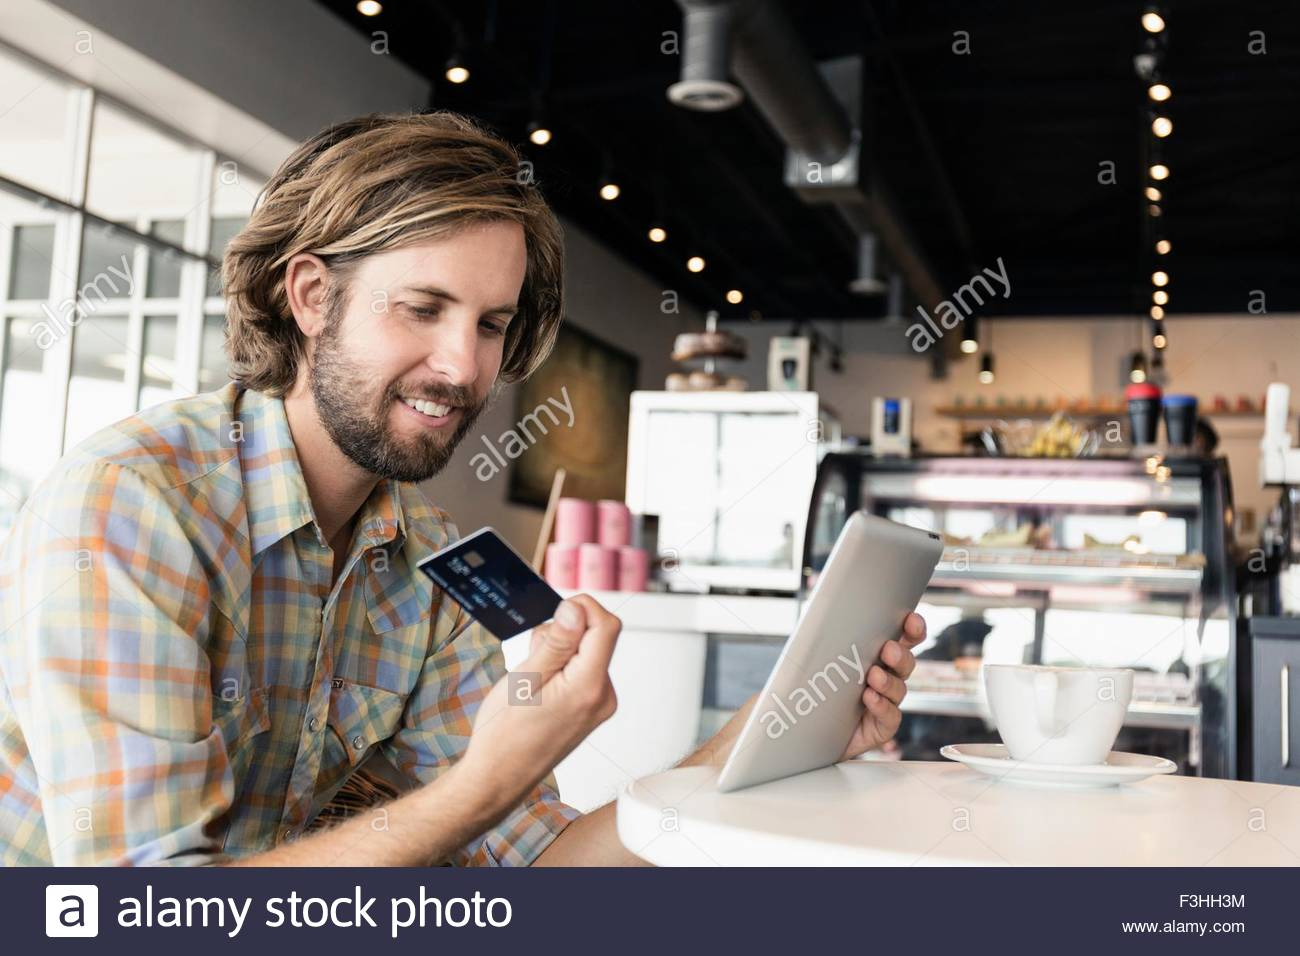 Mid adult man in coffee shop, using digital tablet, holding credit card Photo Stock